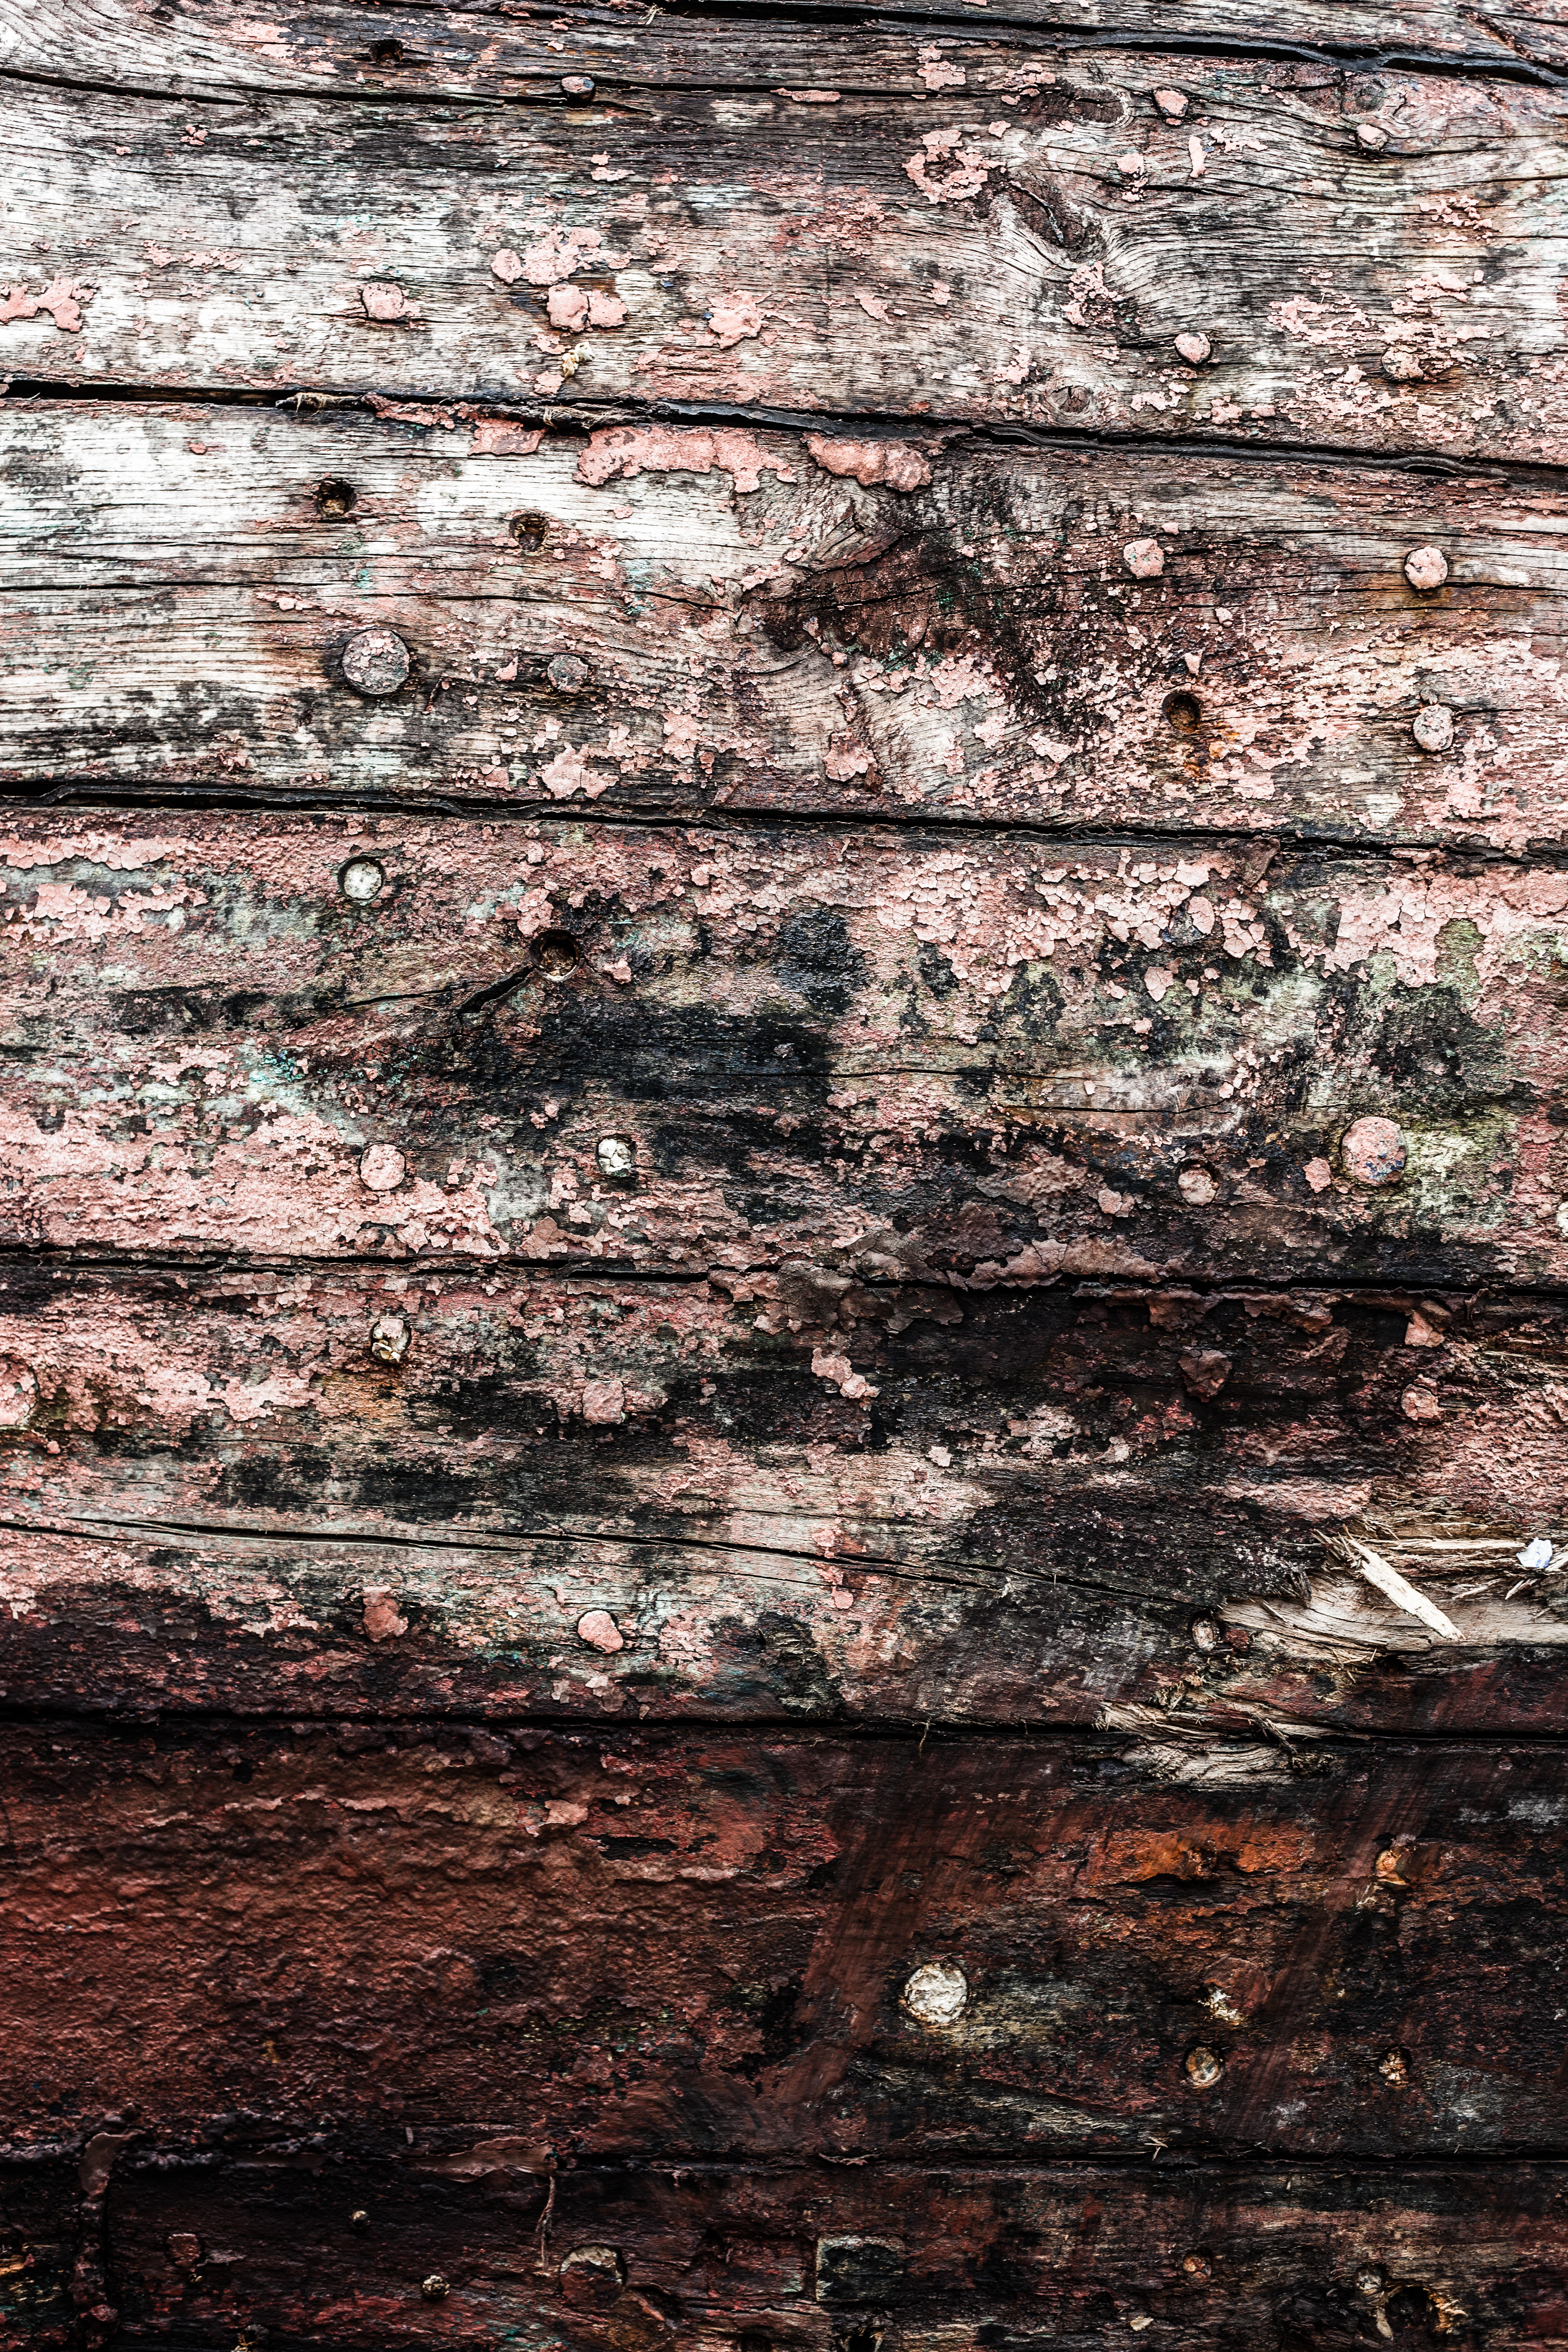 Gritty Wood Texture Background, Damaged, Dirty, Gritty, Grunge, HQ Photo